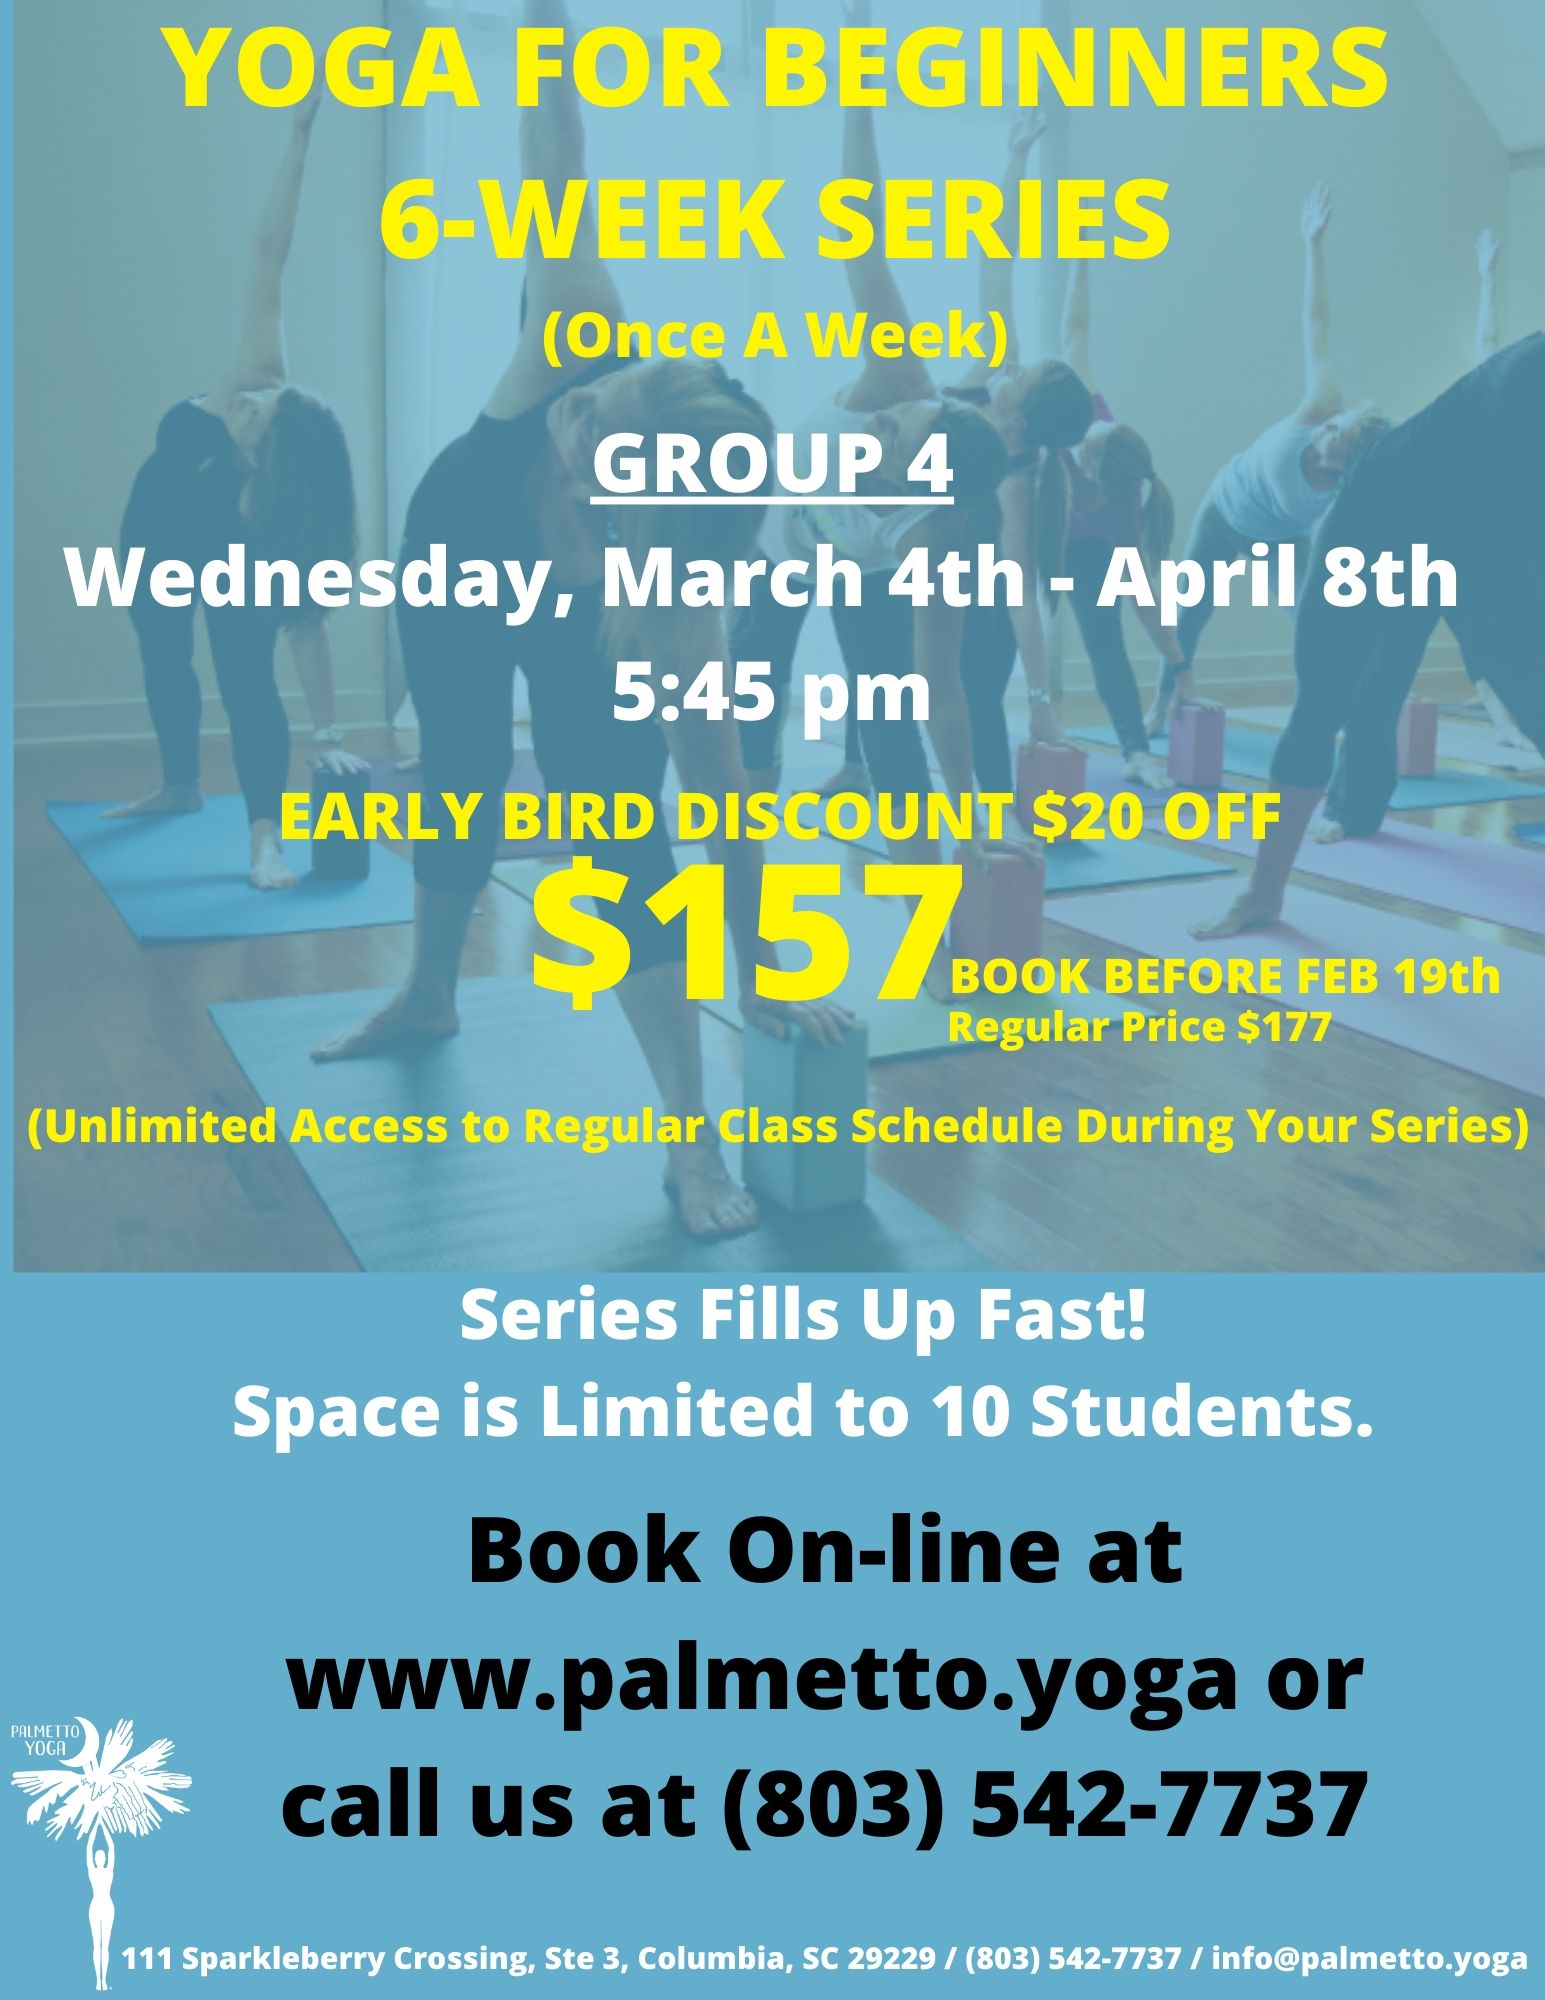 Yoga for Beginners - March 4